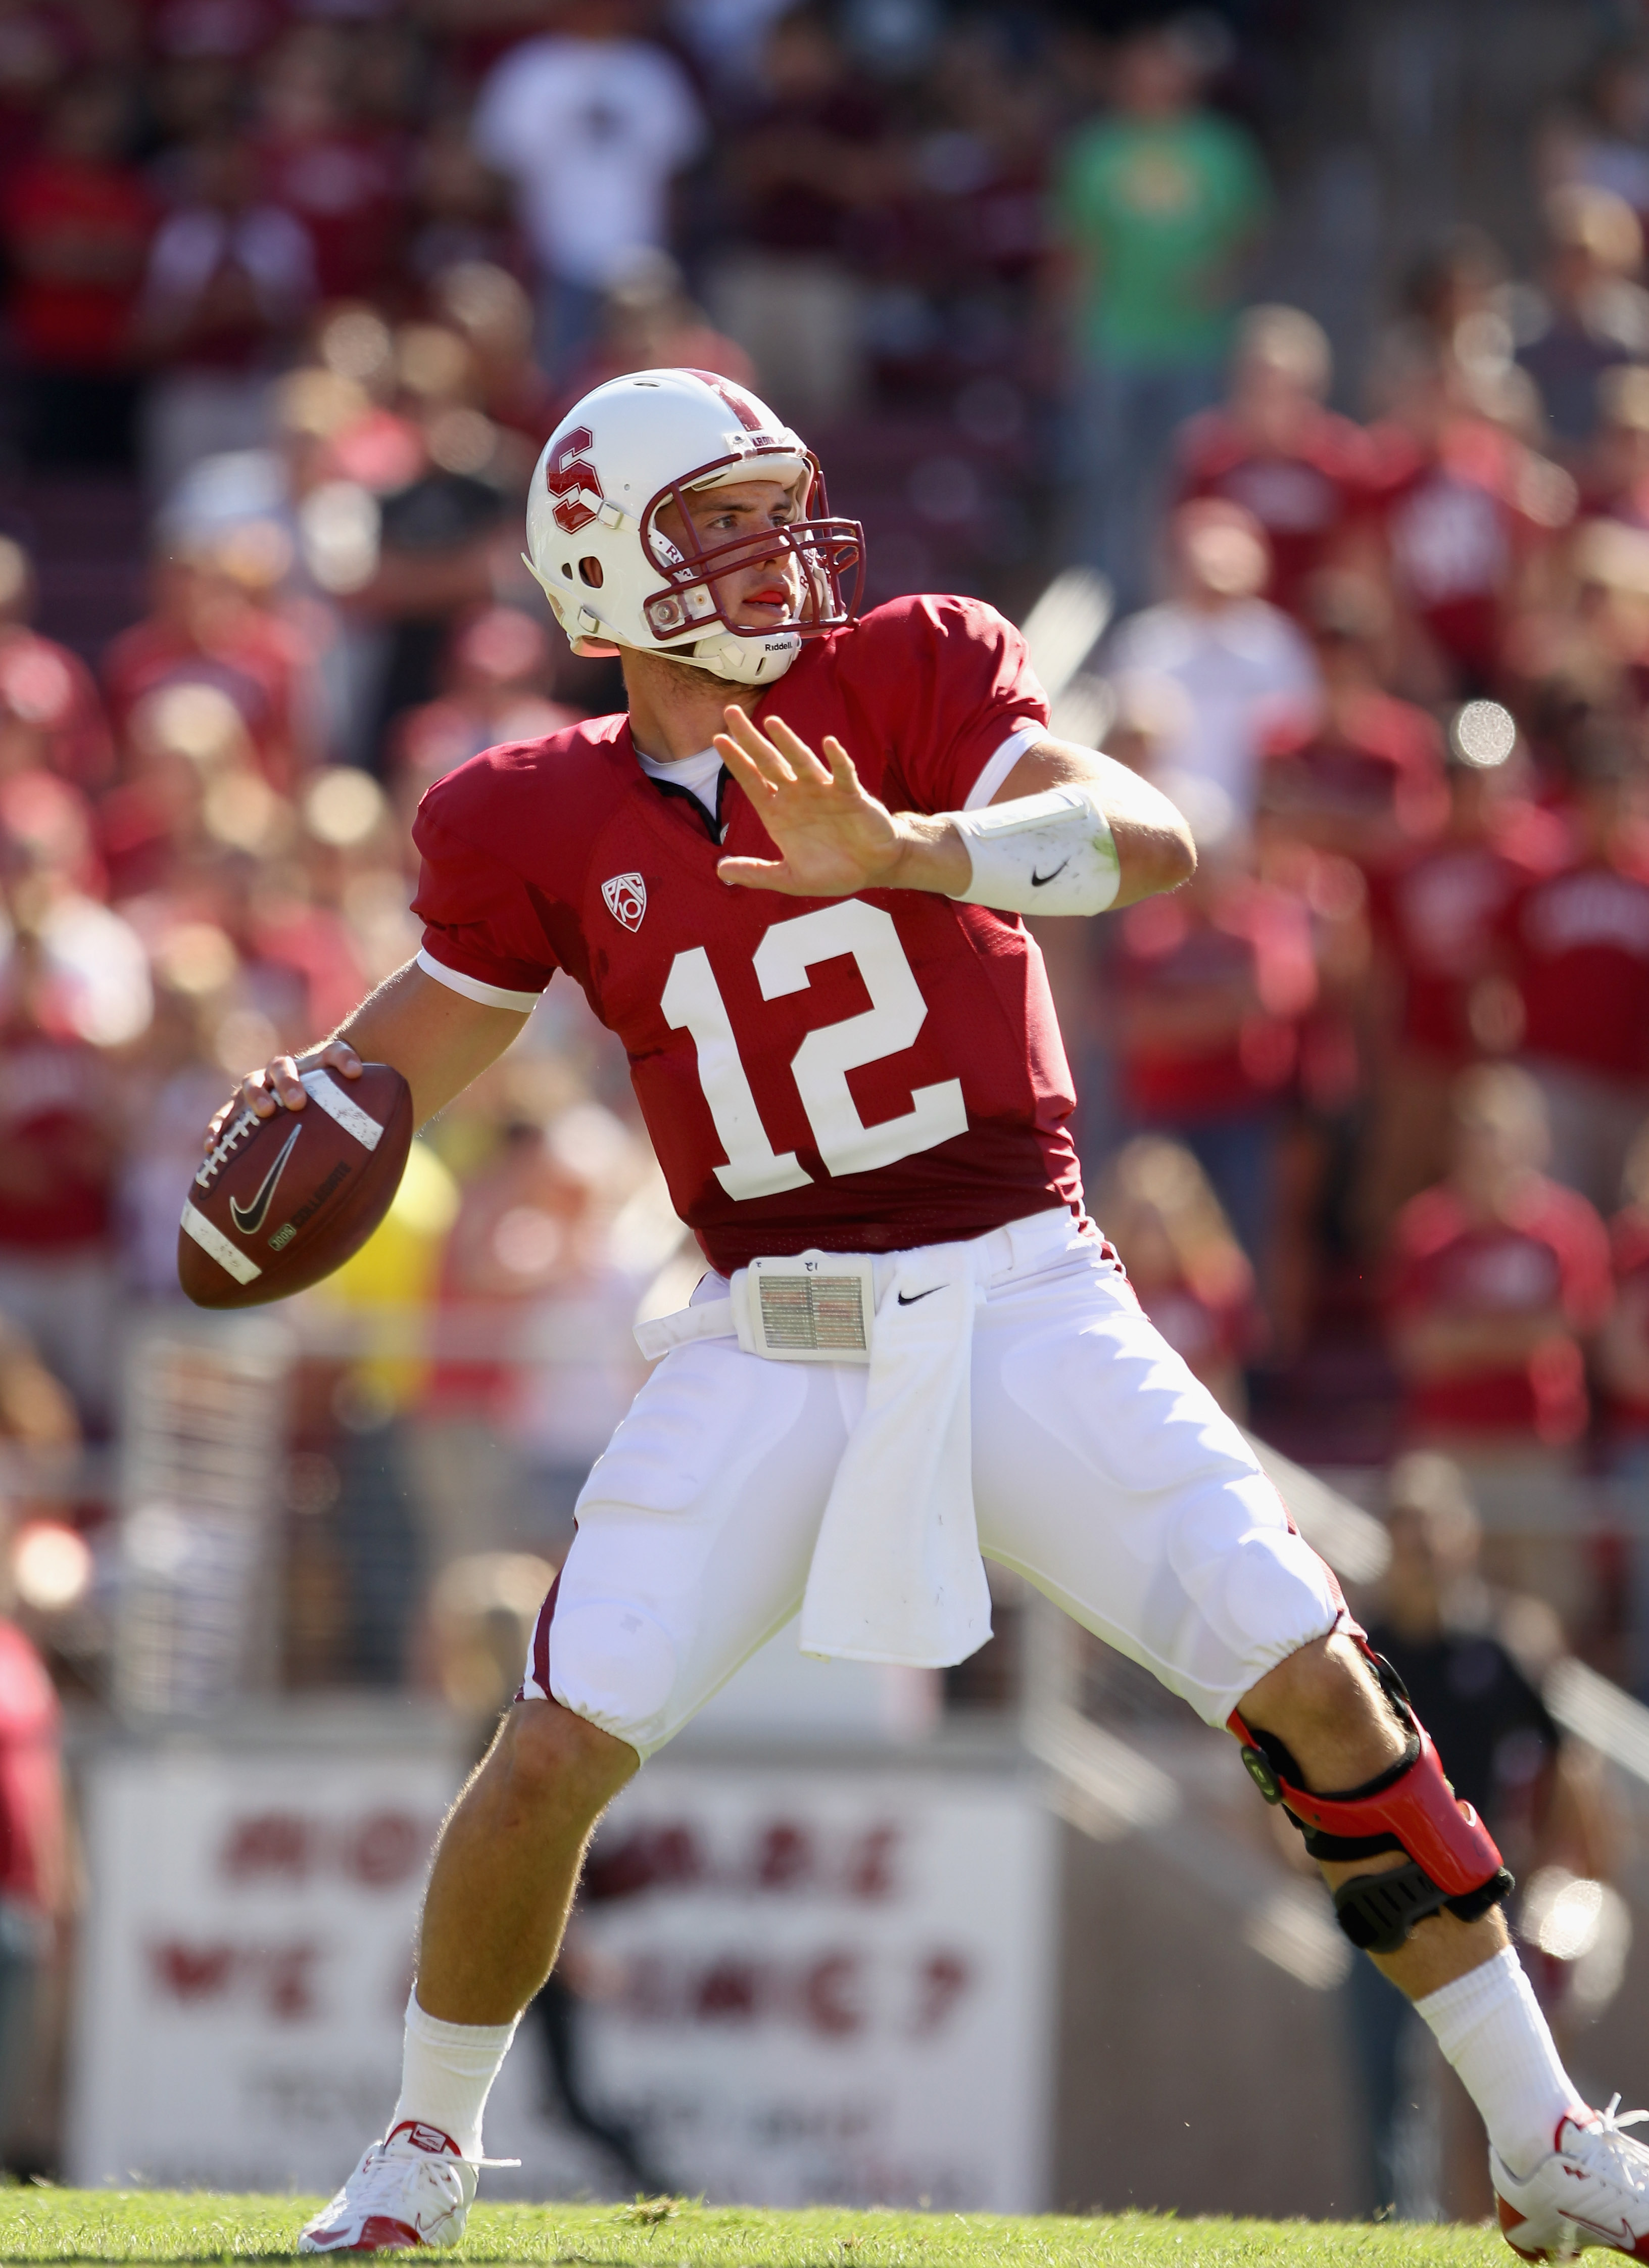 PALO ALTO, CA - SEPTEMBER 04:  Andrew Luck #12 of the Stanford Cardinal in action during their game against the Sacramento State Hornets at Stanford Stadium on September 4, 2010 in Palo Alto, California.  (Photo by Ezra Shaw/Getty Images)